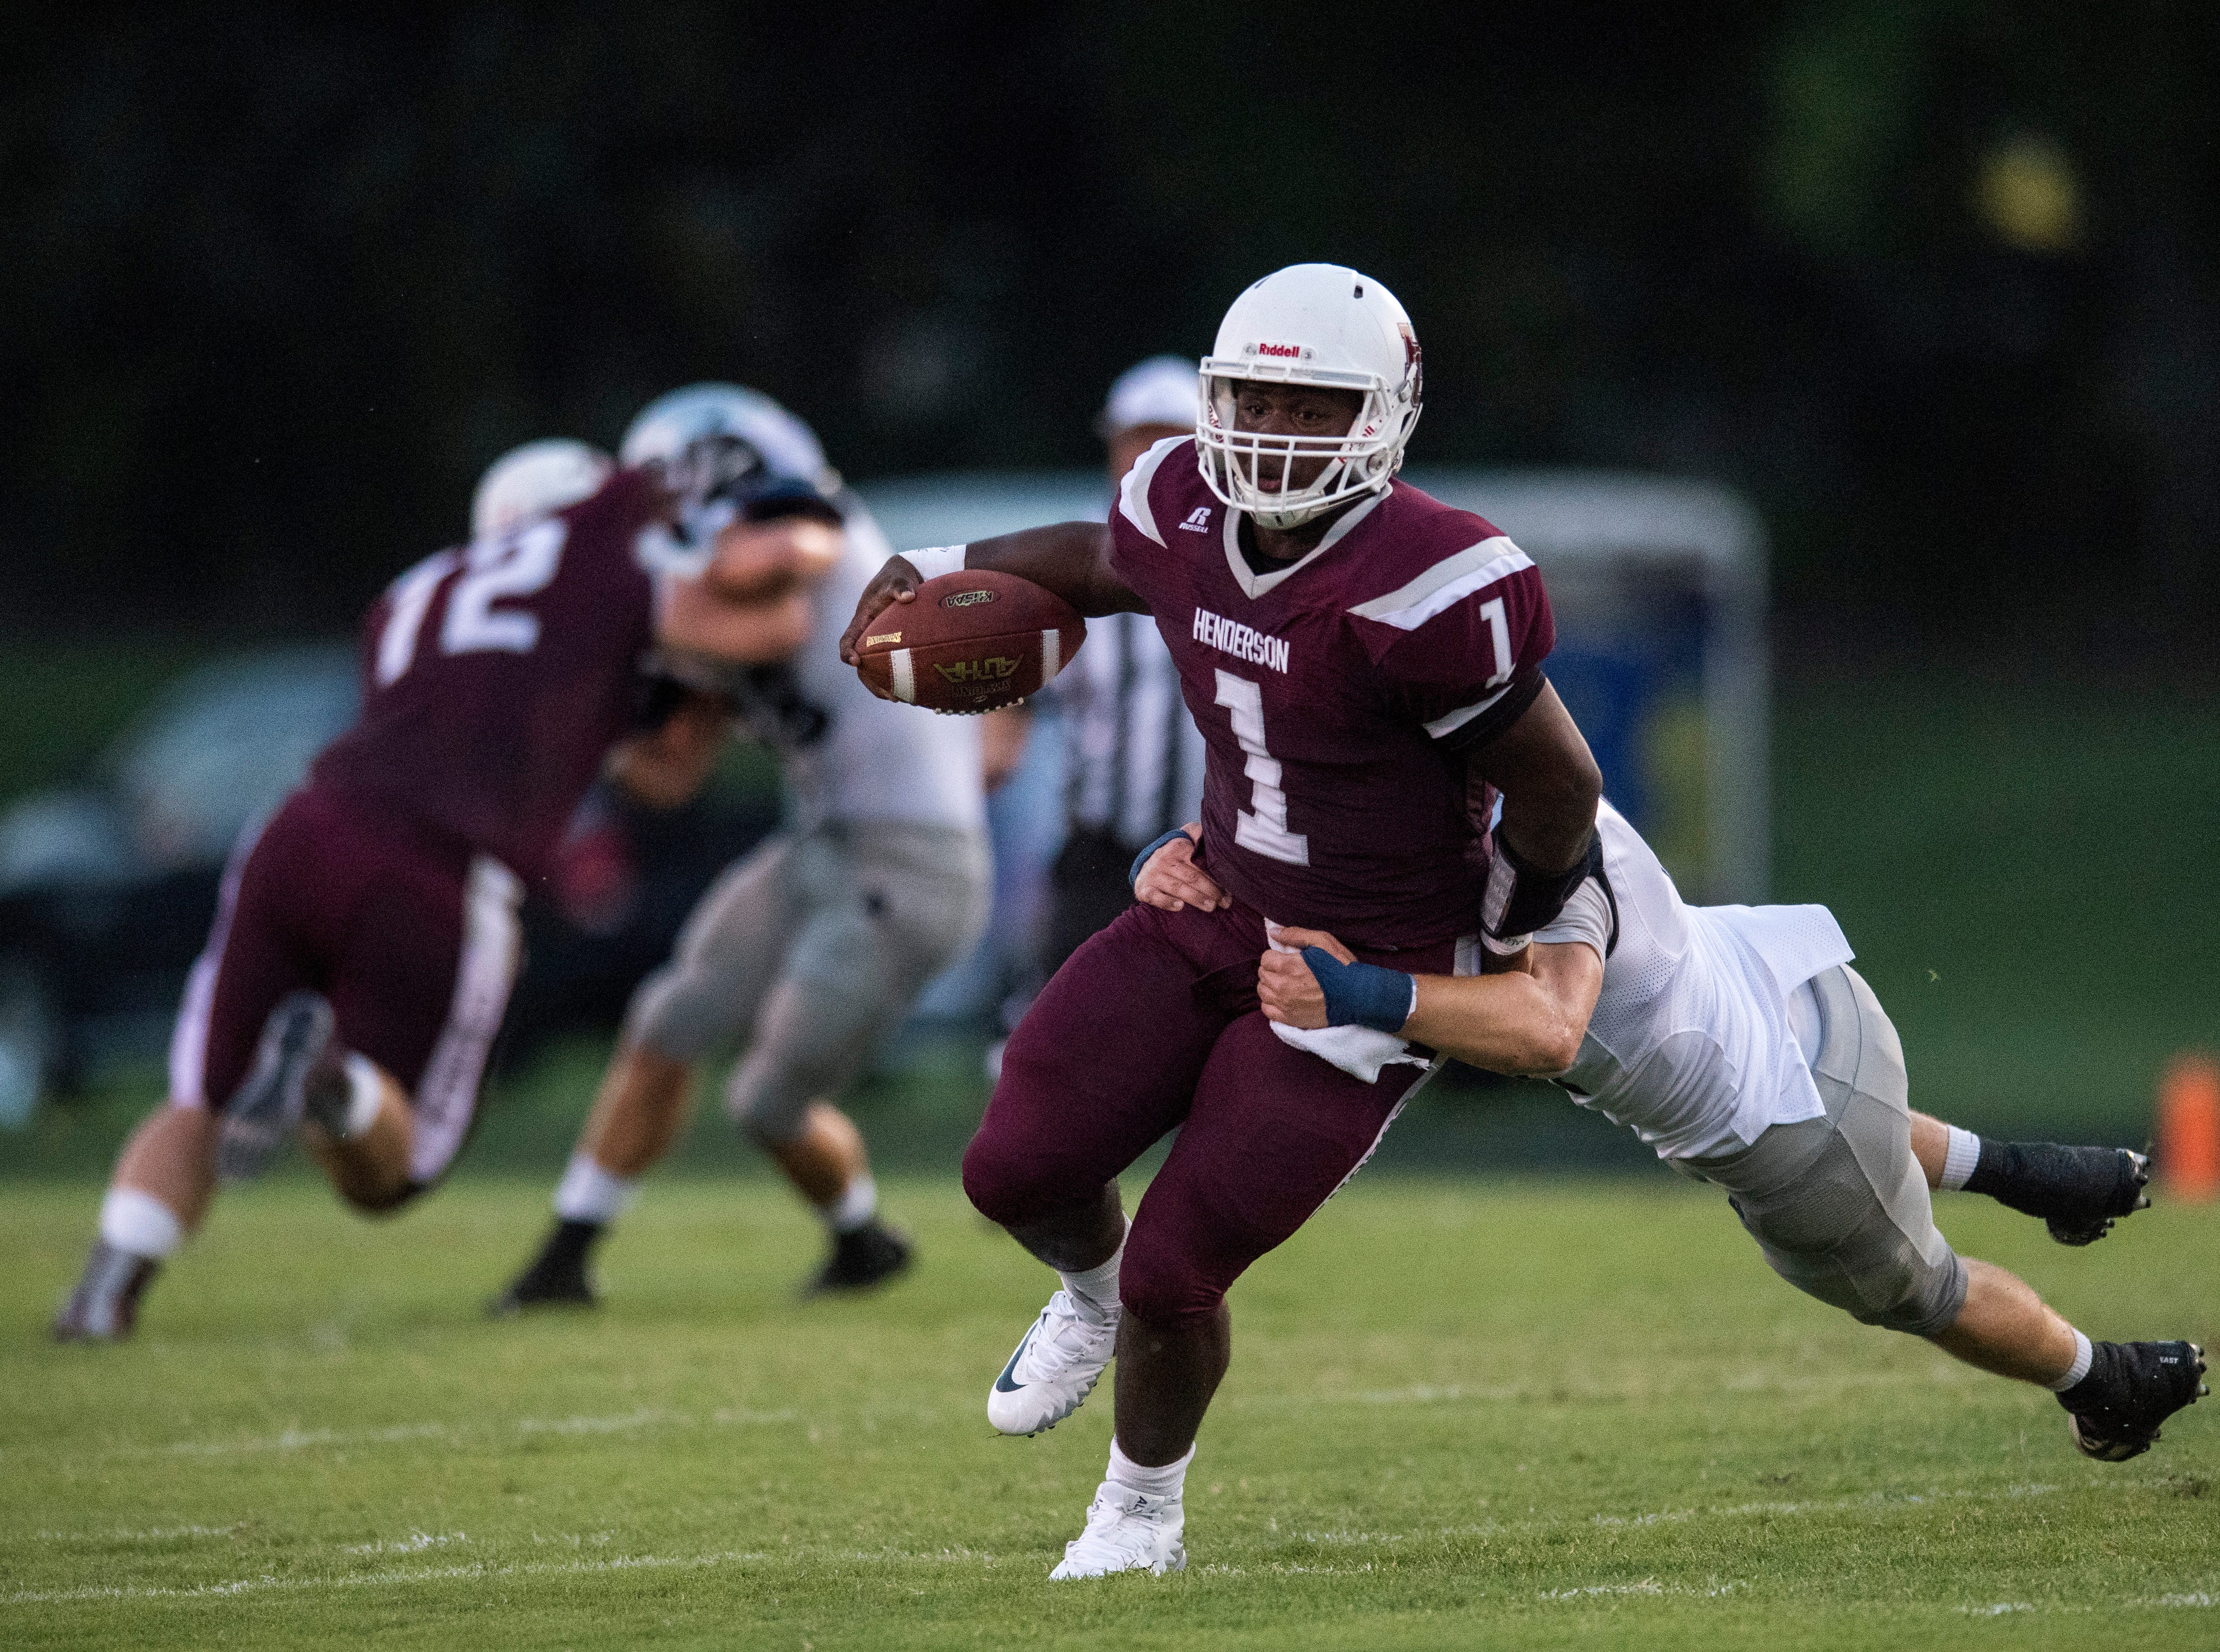 Reitz's Adam Euler (44) tackles HendersonÕs Quarterback Skip Patterson (1) during the Reitz vs Henderson County game at Colonel Stadium Friday, August 17, 2018. The Panthers defeated the Colonels 41-35 in the season opening game.